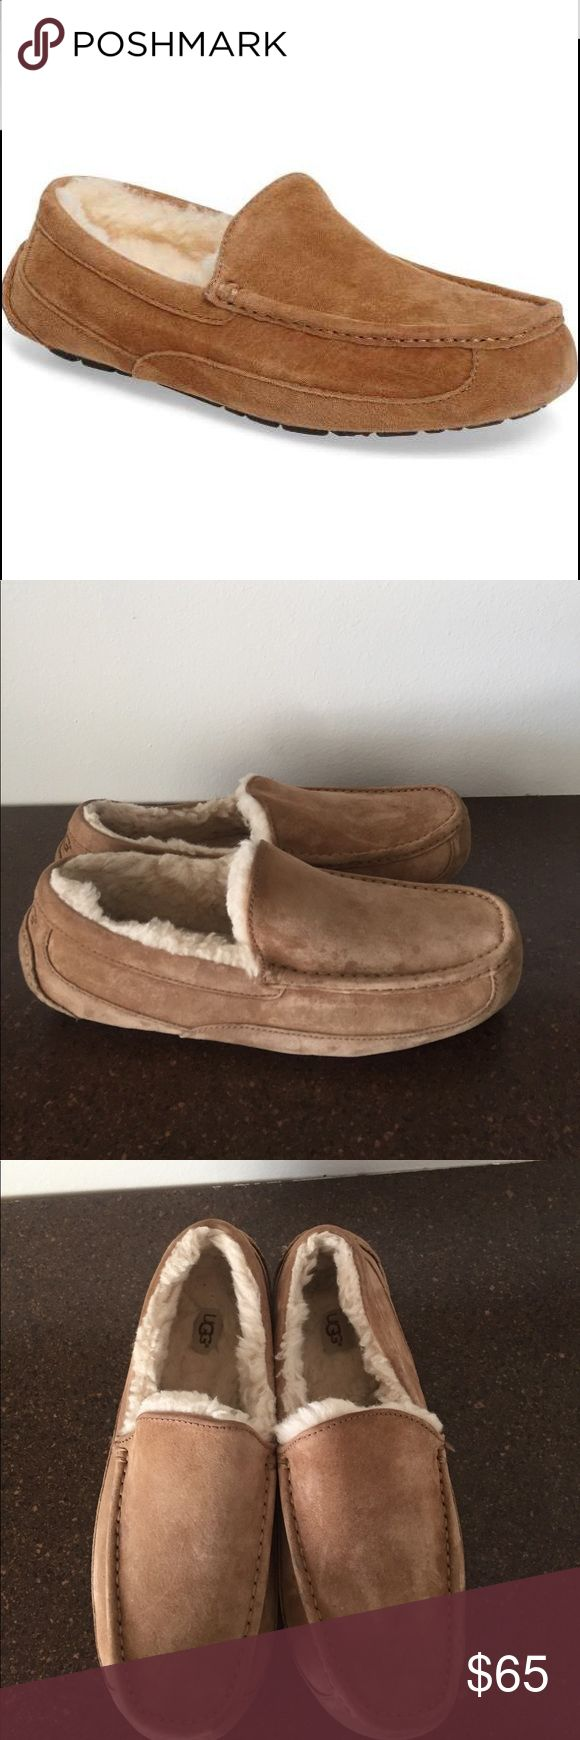 Ugg Suede Ascot Slippers Men's Suede Ugg Ascot Slippers. Only worn once! Fur on inside is like new (pictured). Suede has little to no signs of wear and bottoms are like new (pictured). Awesome and comfortable shoes! UGG Shoes Rain & Snow Boots